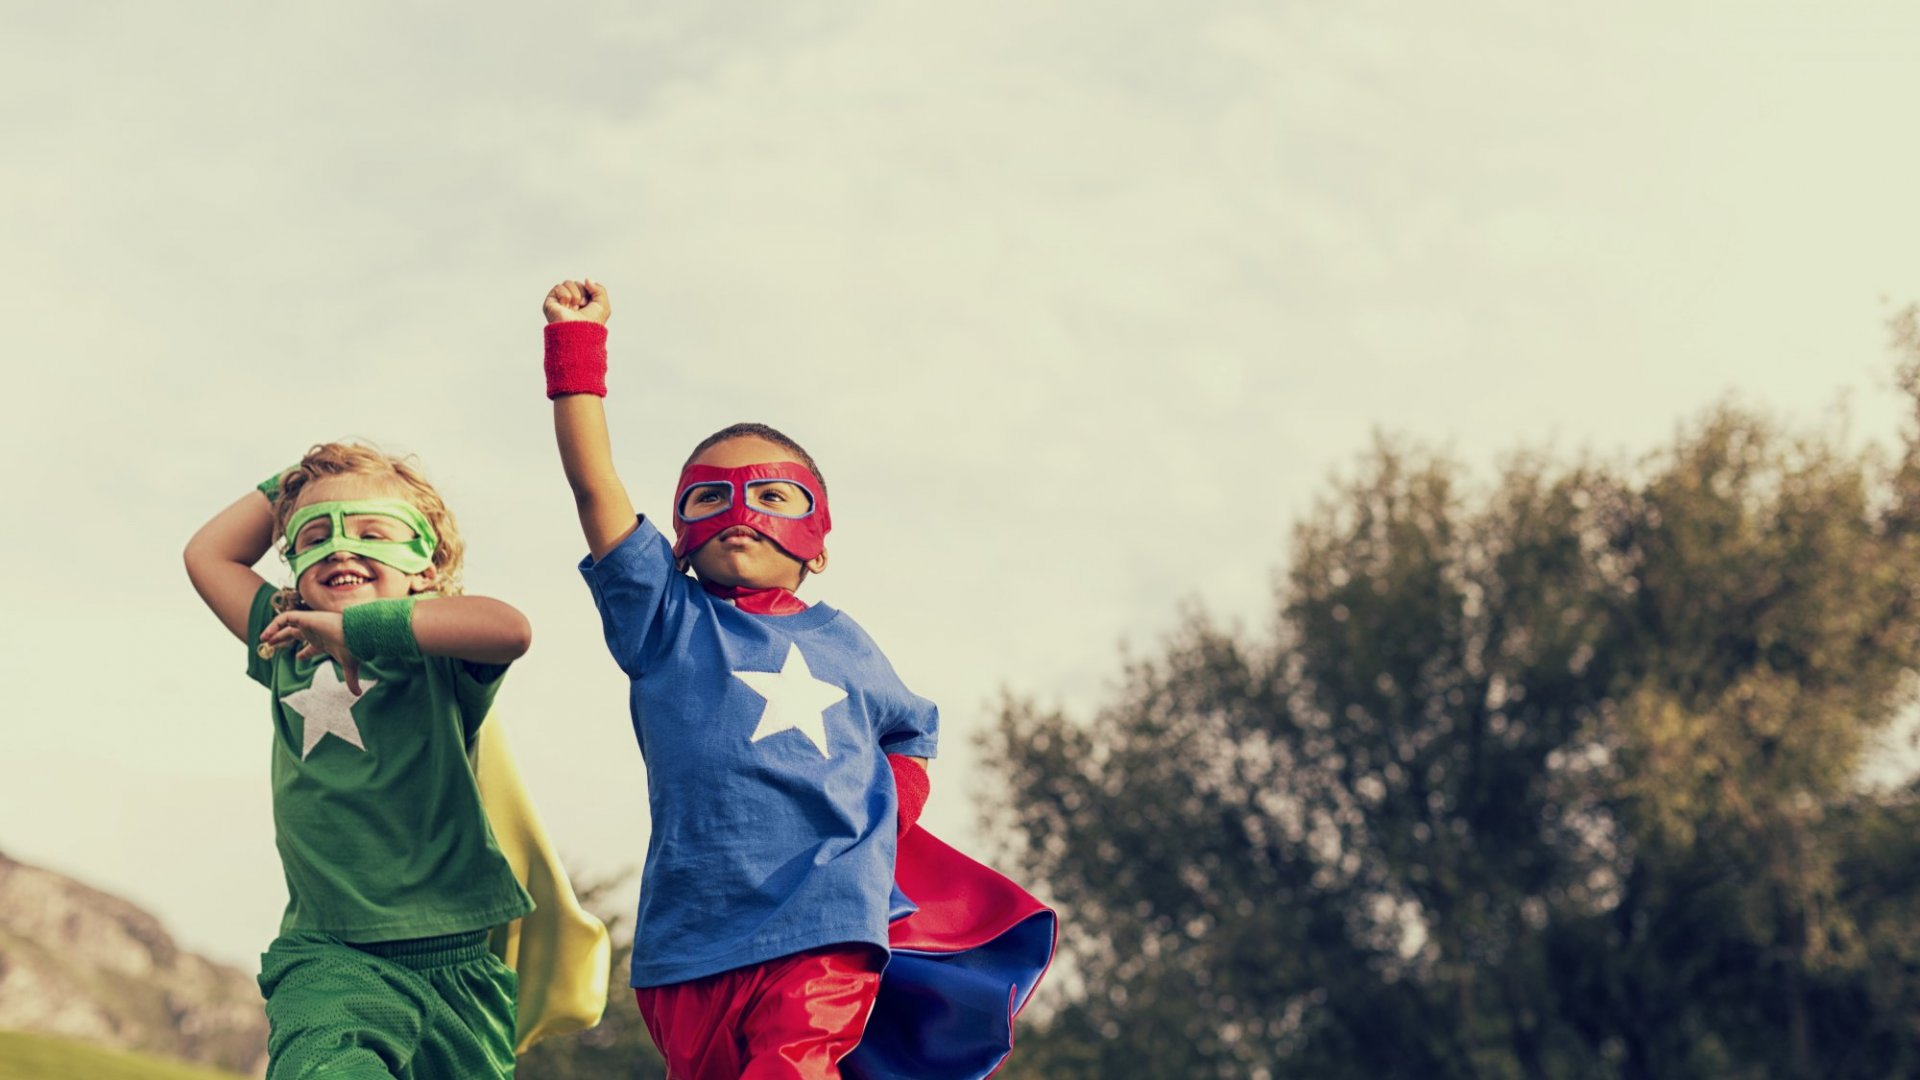 6 Forgotten Leadership Lessons From Childhood